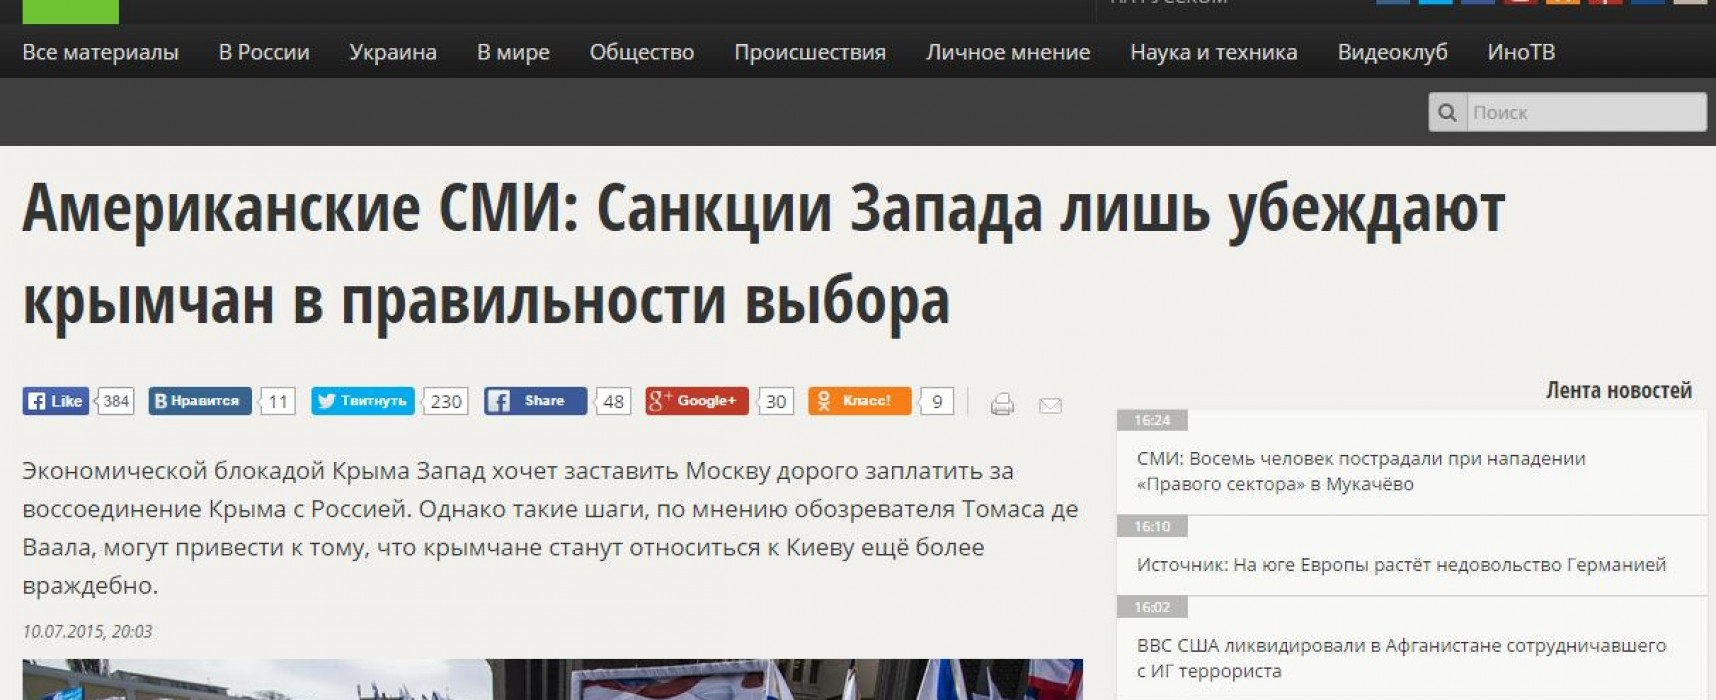 Russian Media Distort American Magazine Article